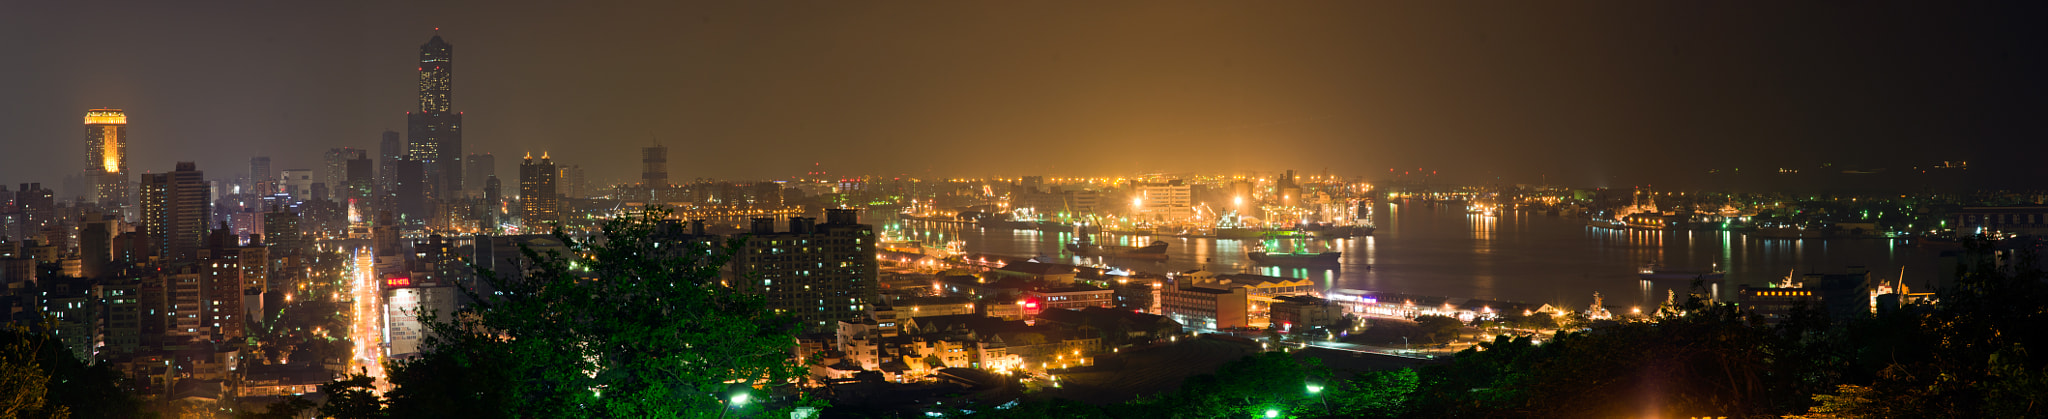 Photograph Kaohsiung City by Red Bean Liu on 500px